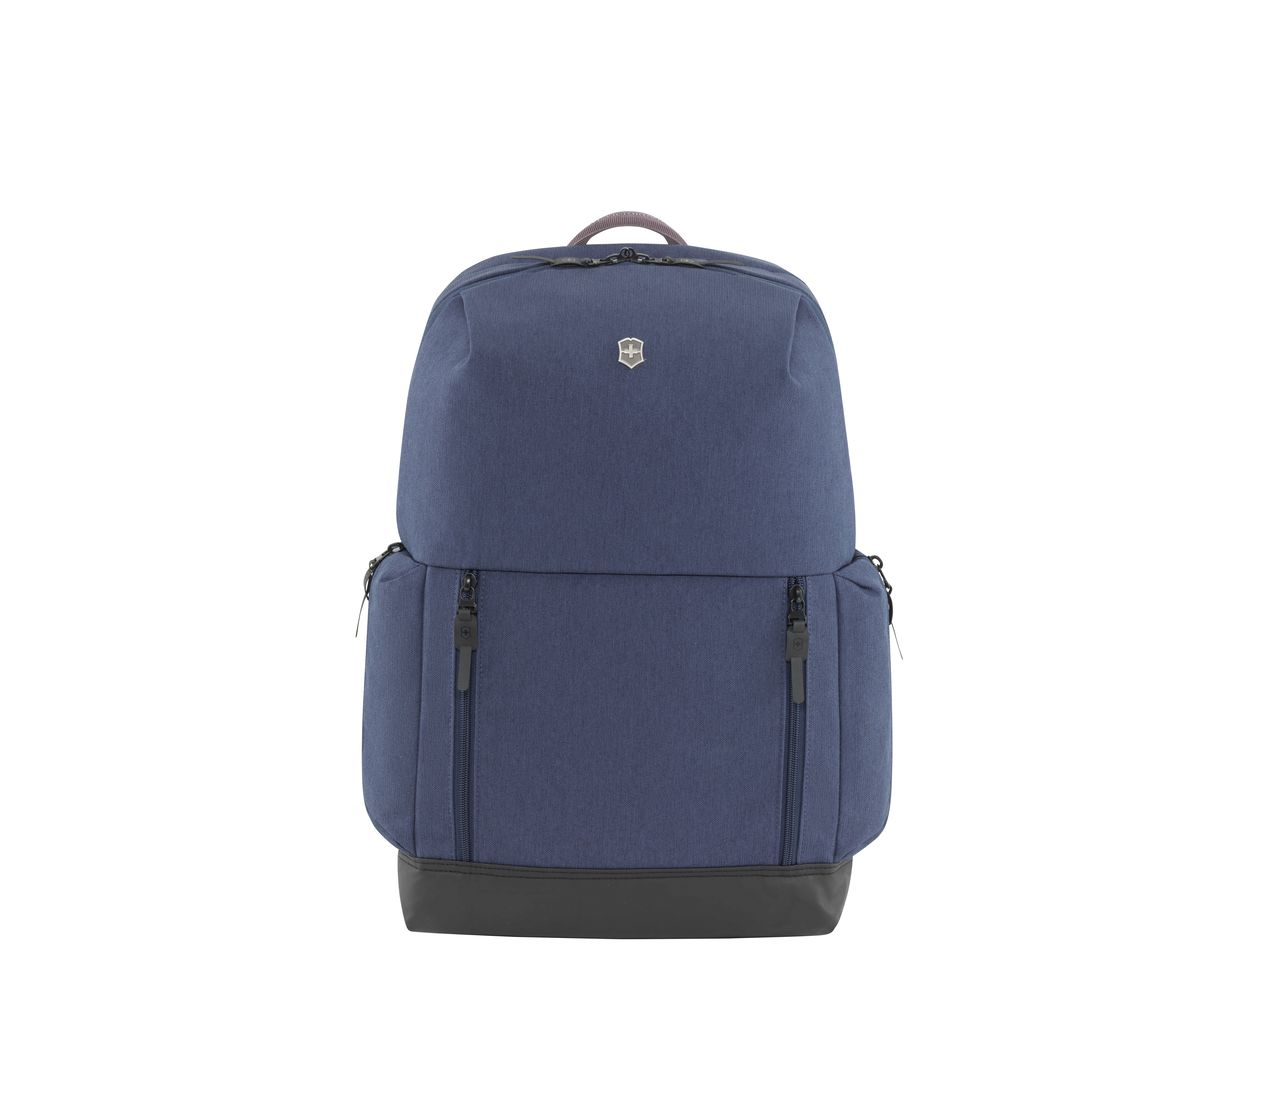 Deluxe Laptop Backpack-605315